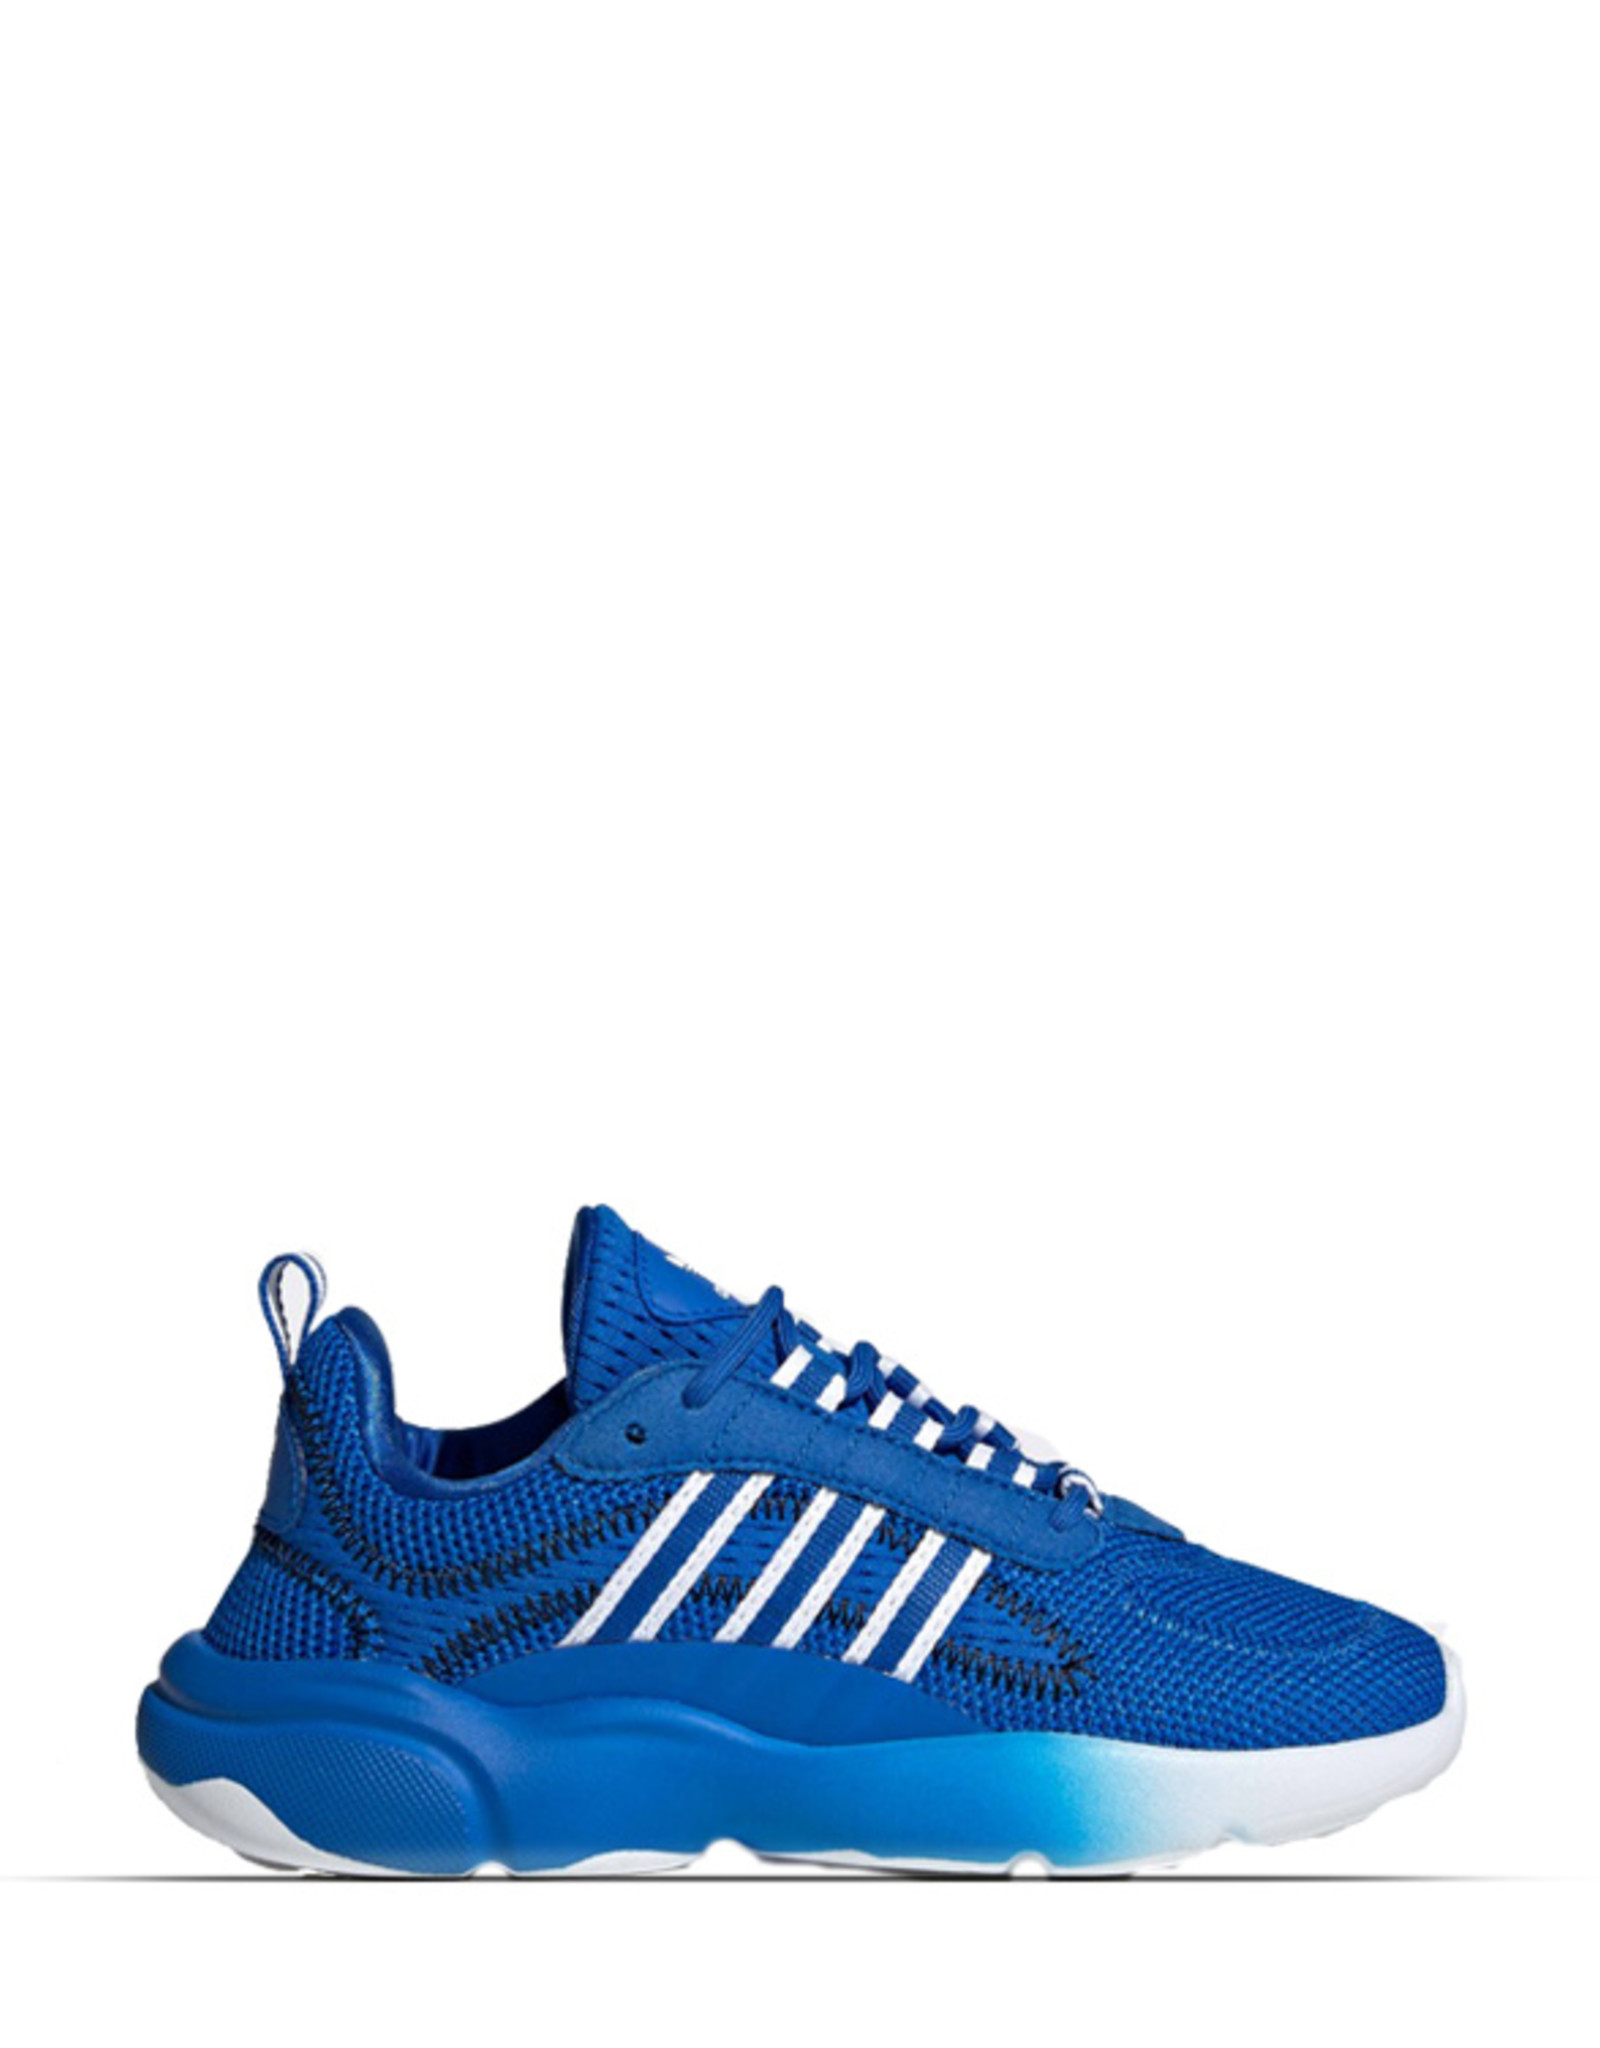 ADIDAS ORIGINALS HAIWEE JUNIOR BLUE SKY UNISEX